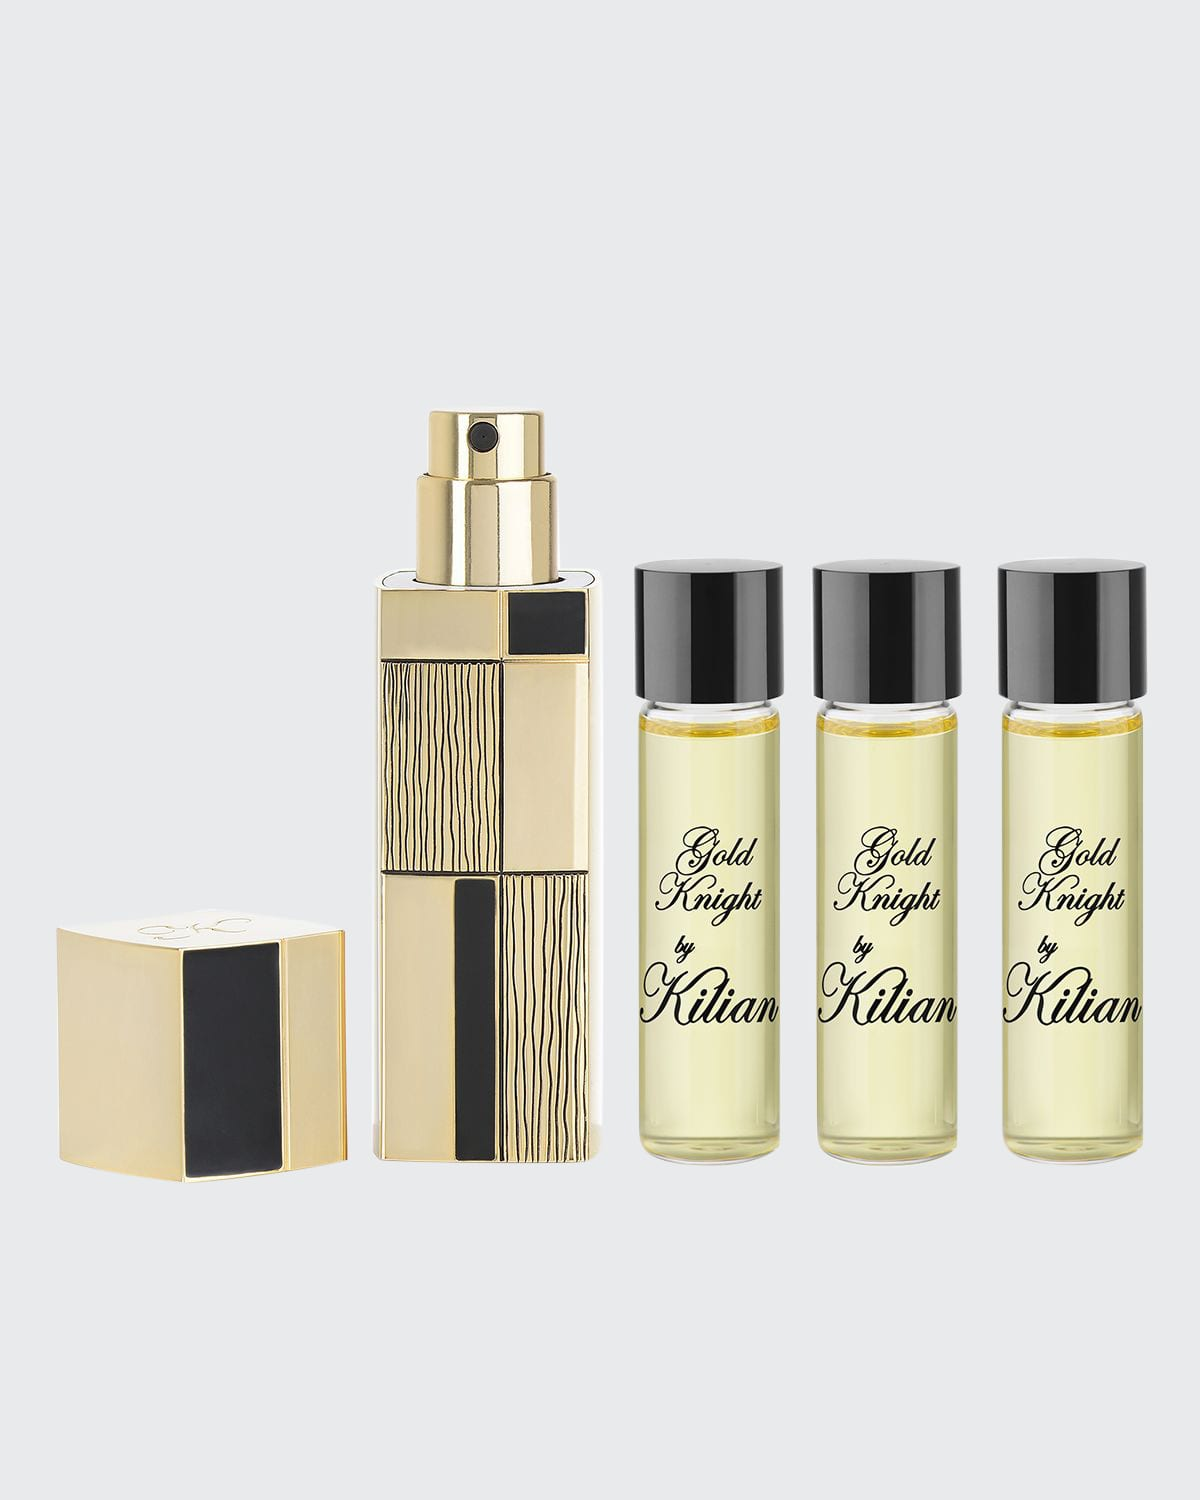 Gold Knight Travel Spray with its 4 x .25 oz refills